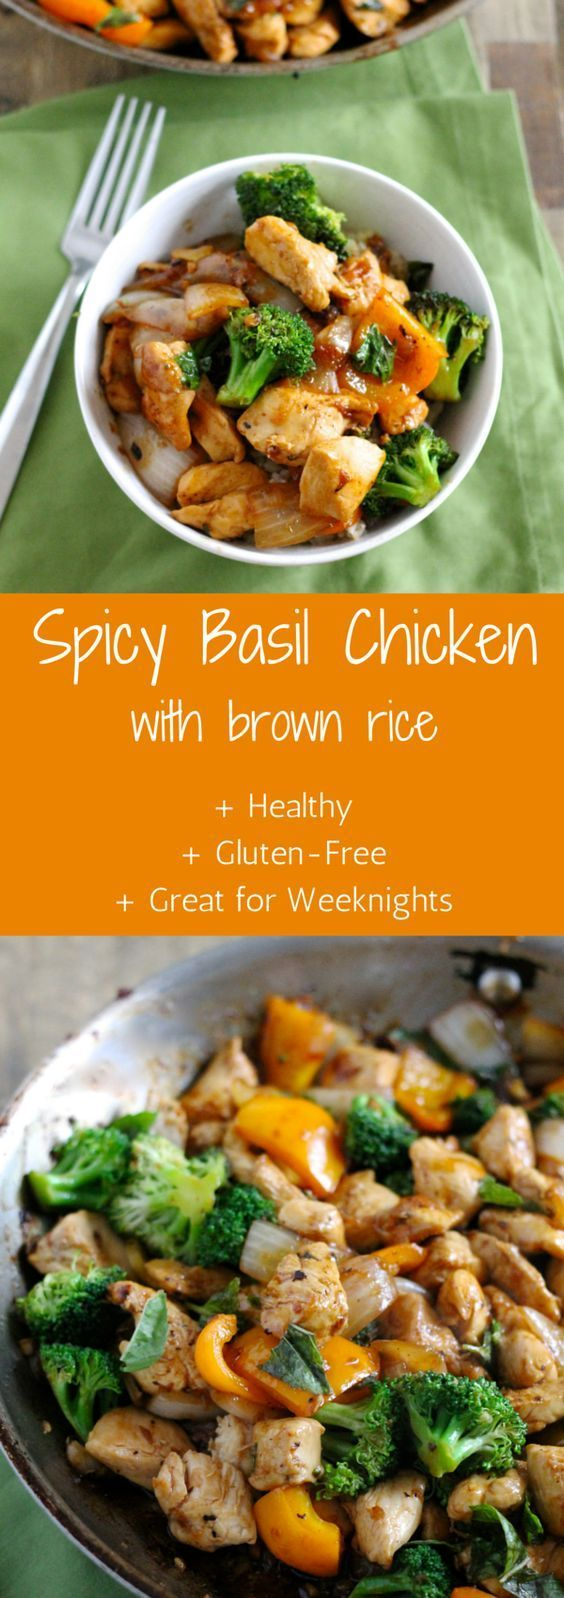 Insanely Delicious Spicy Basil Chicken with Brown Rice l It's healthy, gluten-free, and easy enough to make on a weeknight! The whole family will love this dish. l http://www.littlechefbigappetite.com